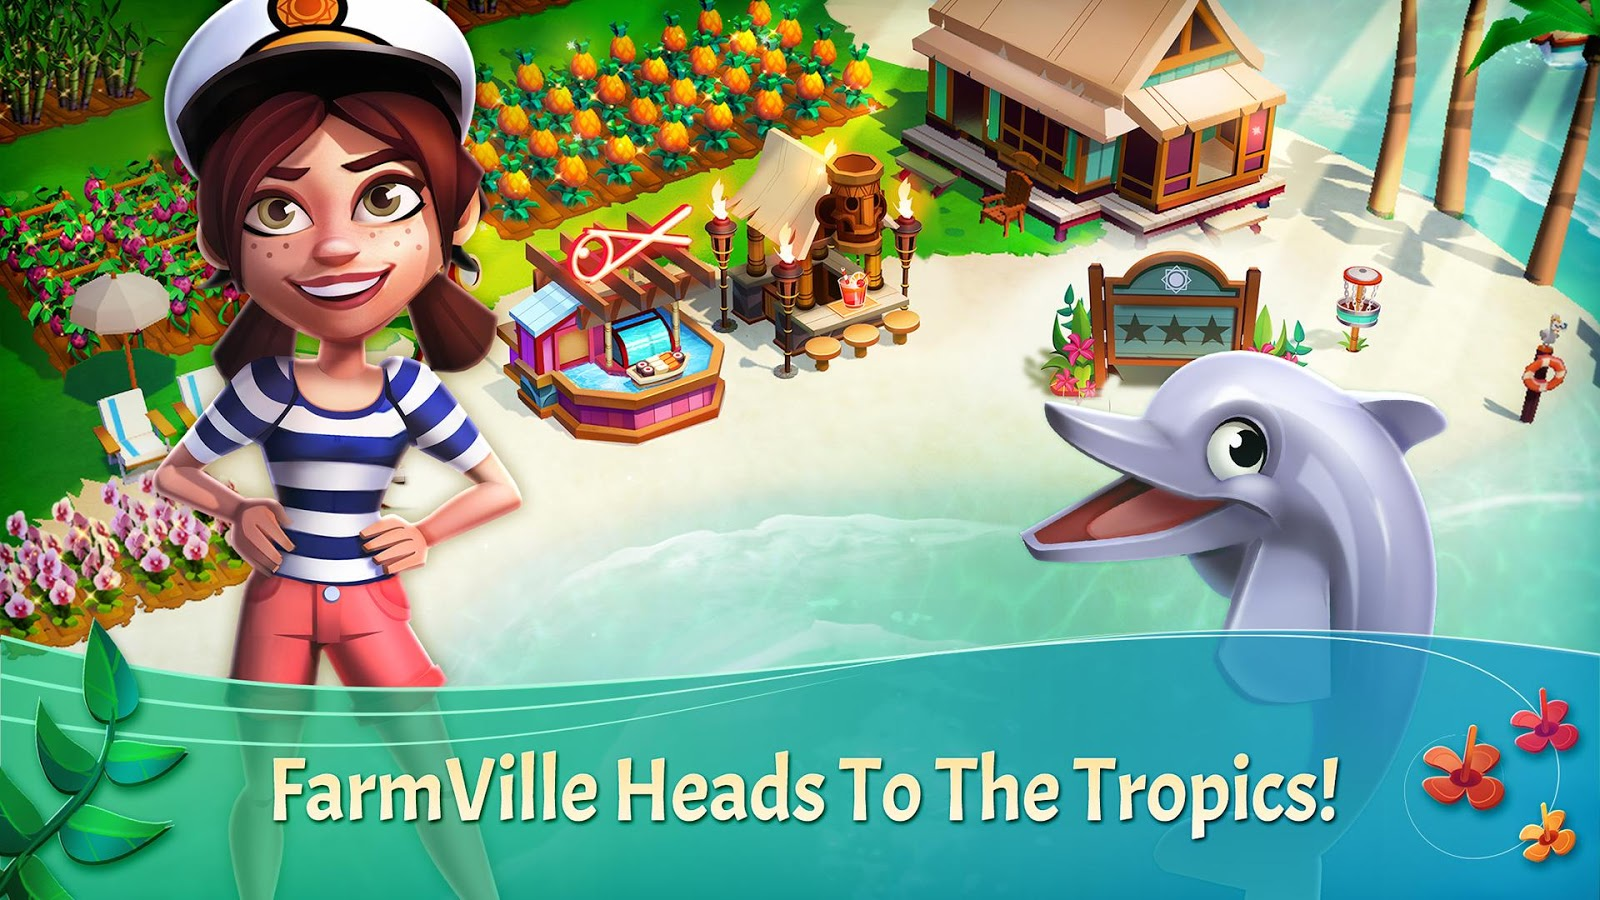 FarmVille: Tropic Escape 1.2.321 Apk Mod Unlimited Gems